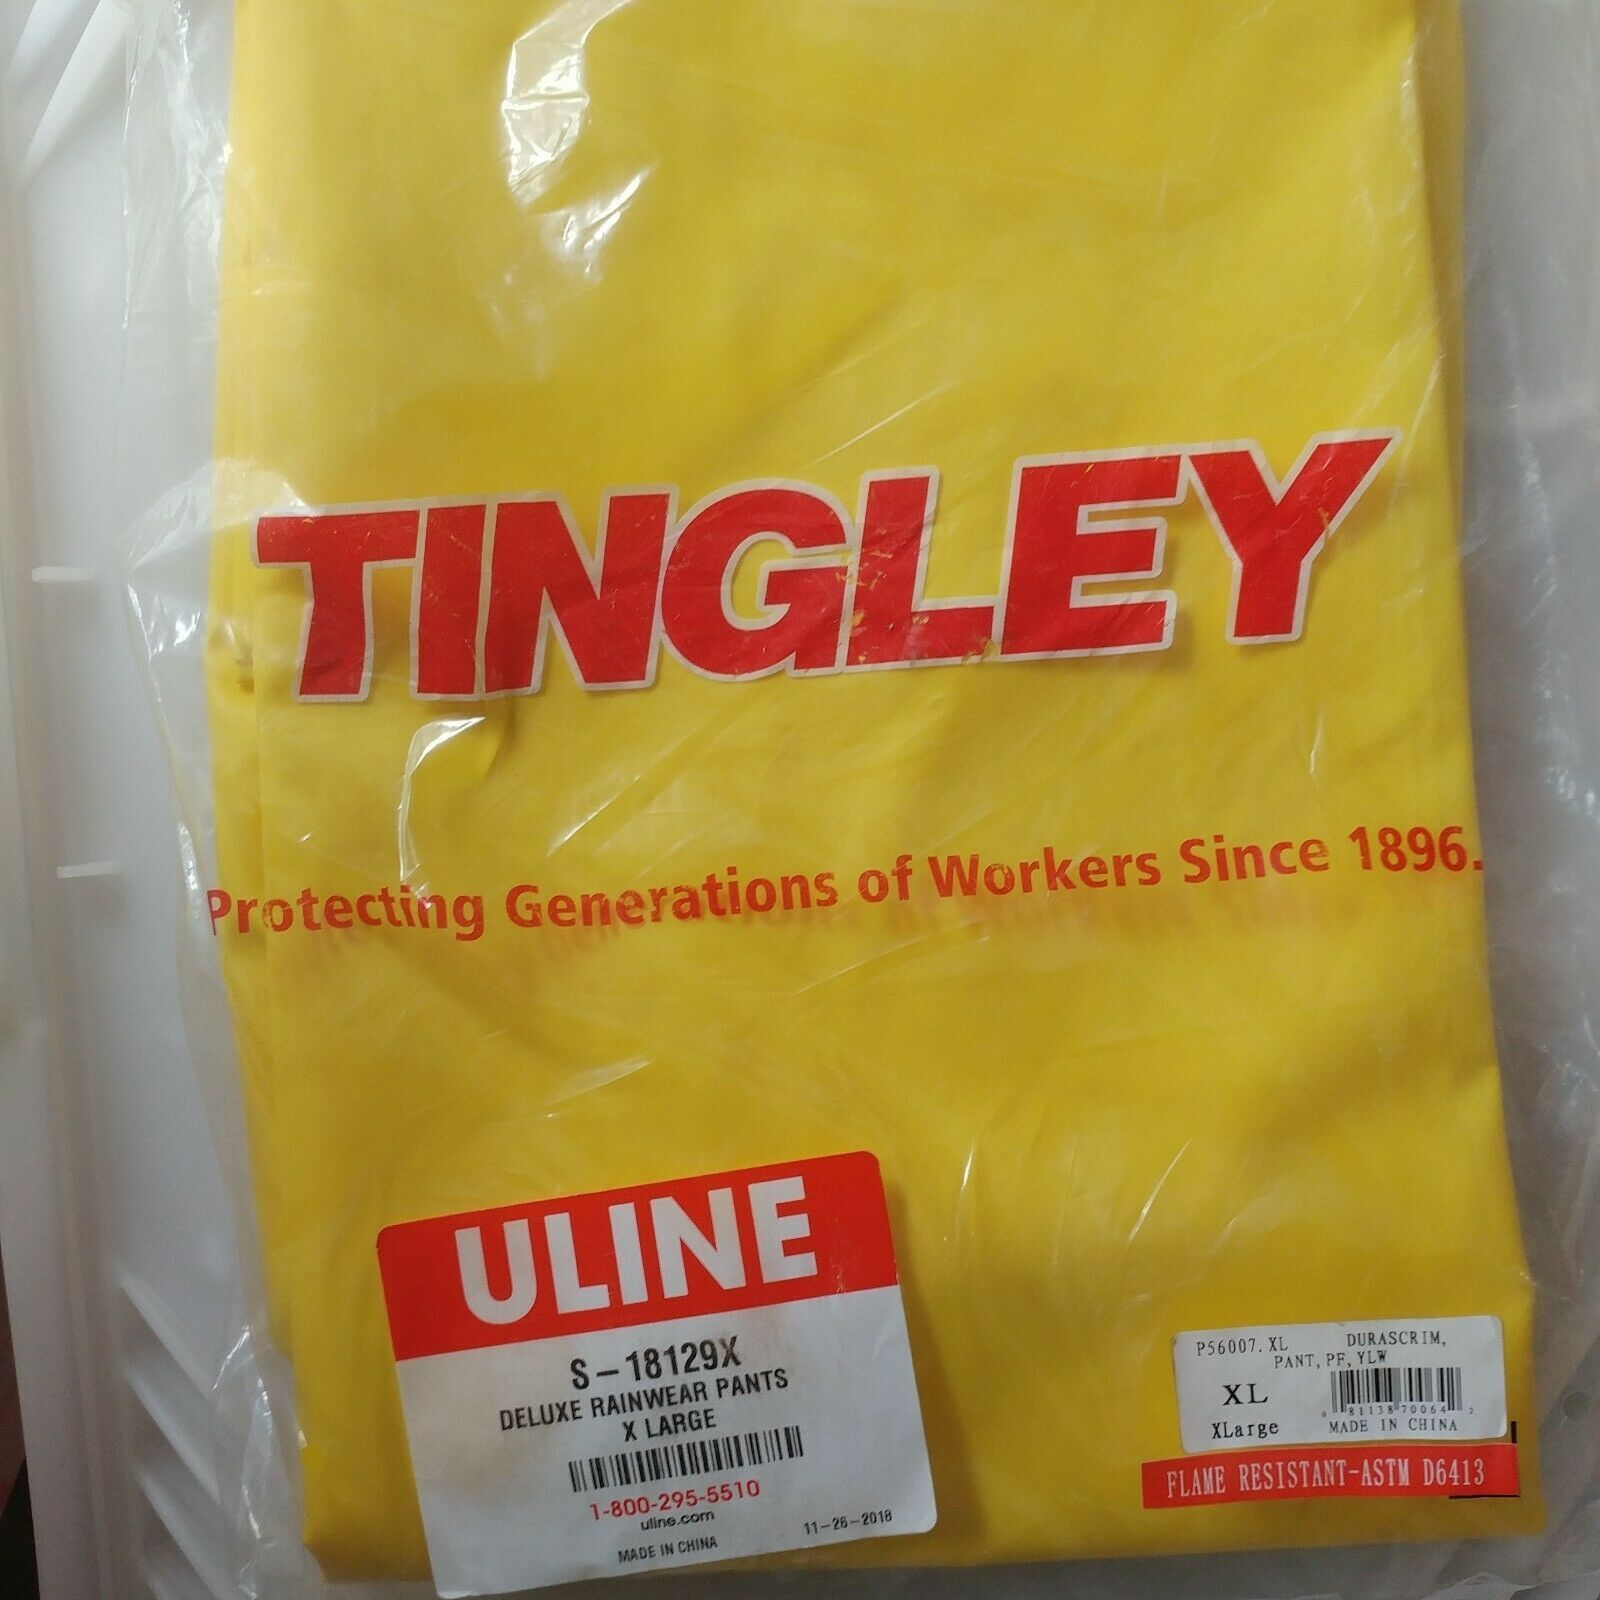 Primary image for Tingley Uline Deluxe Rainwear Pants X-Large